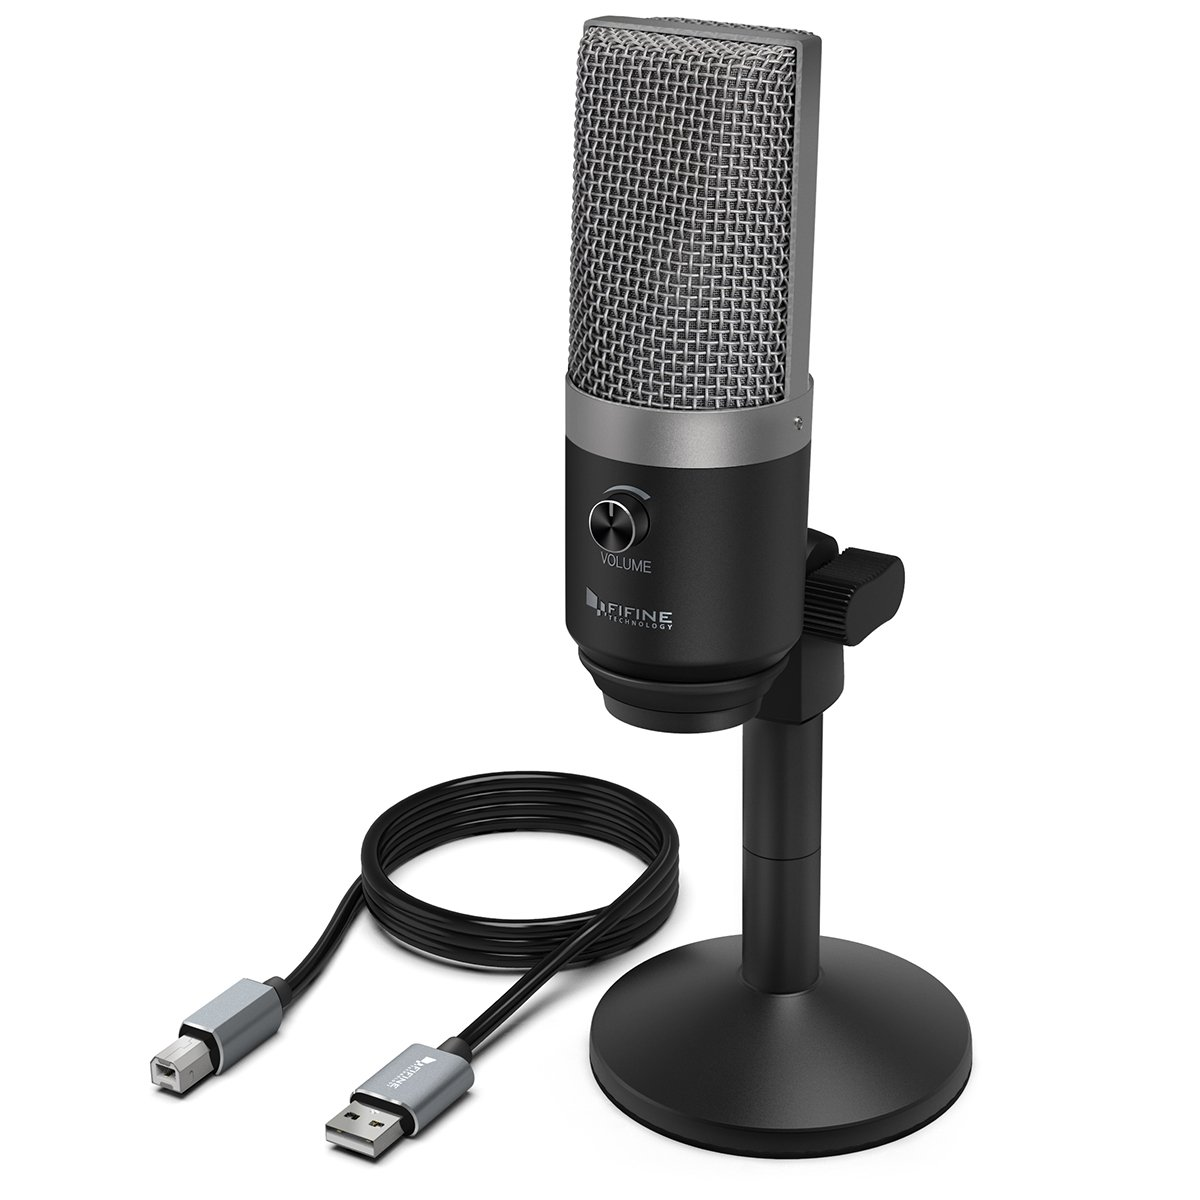 Usb Microphone,Fifine Pc Microphone For Mac And Windows Computers,Optimized For Recording,Streaming Twitch,Voice Overs,Podcasting For Youtube,Skype Chats.(K670) by Fifine Technology